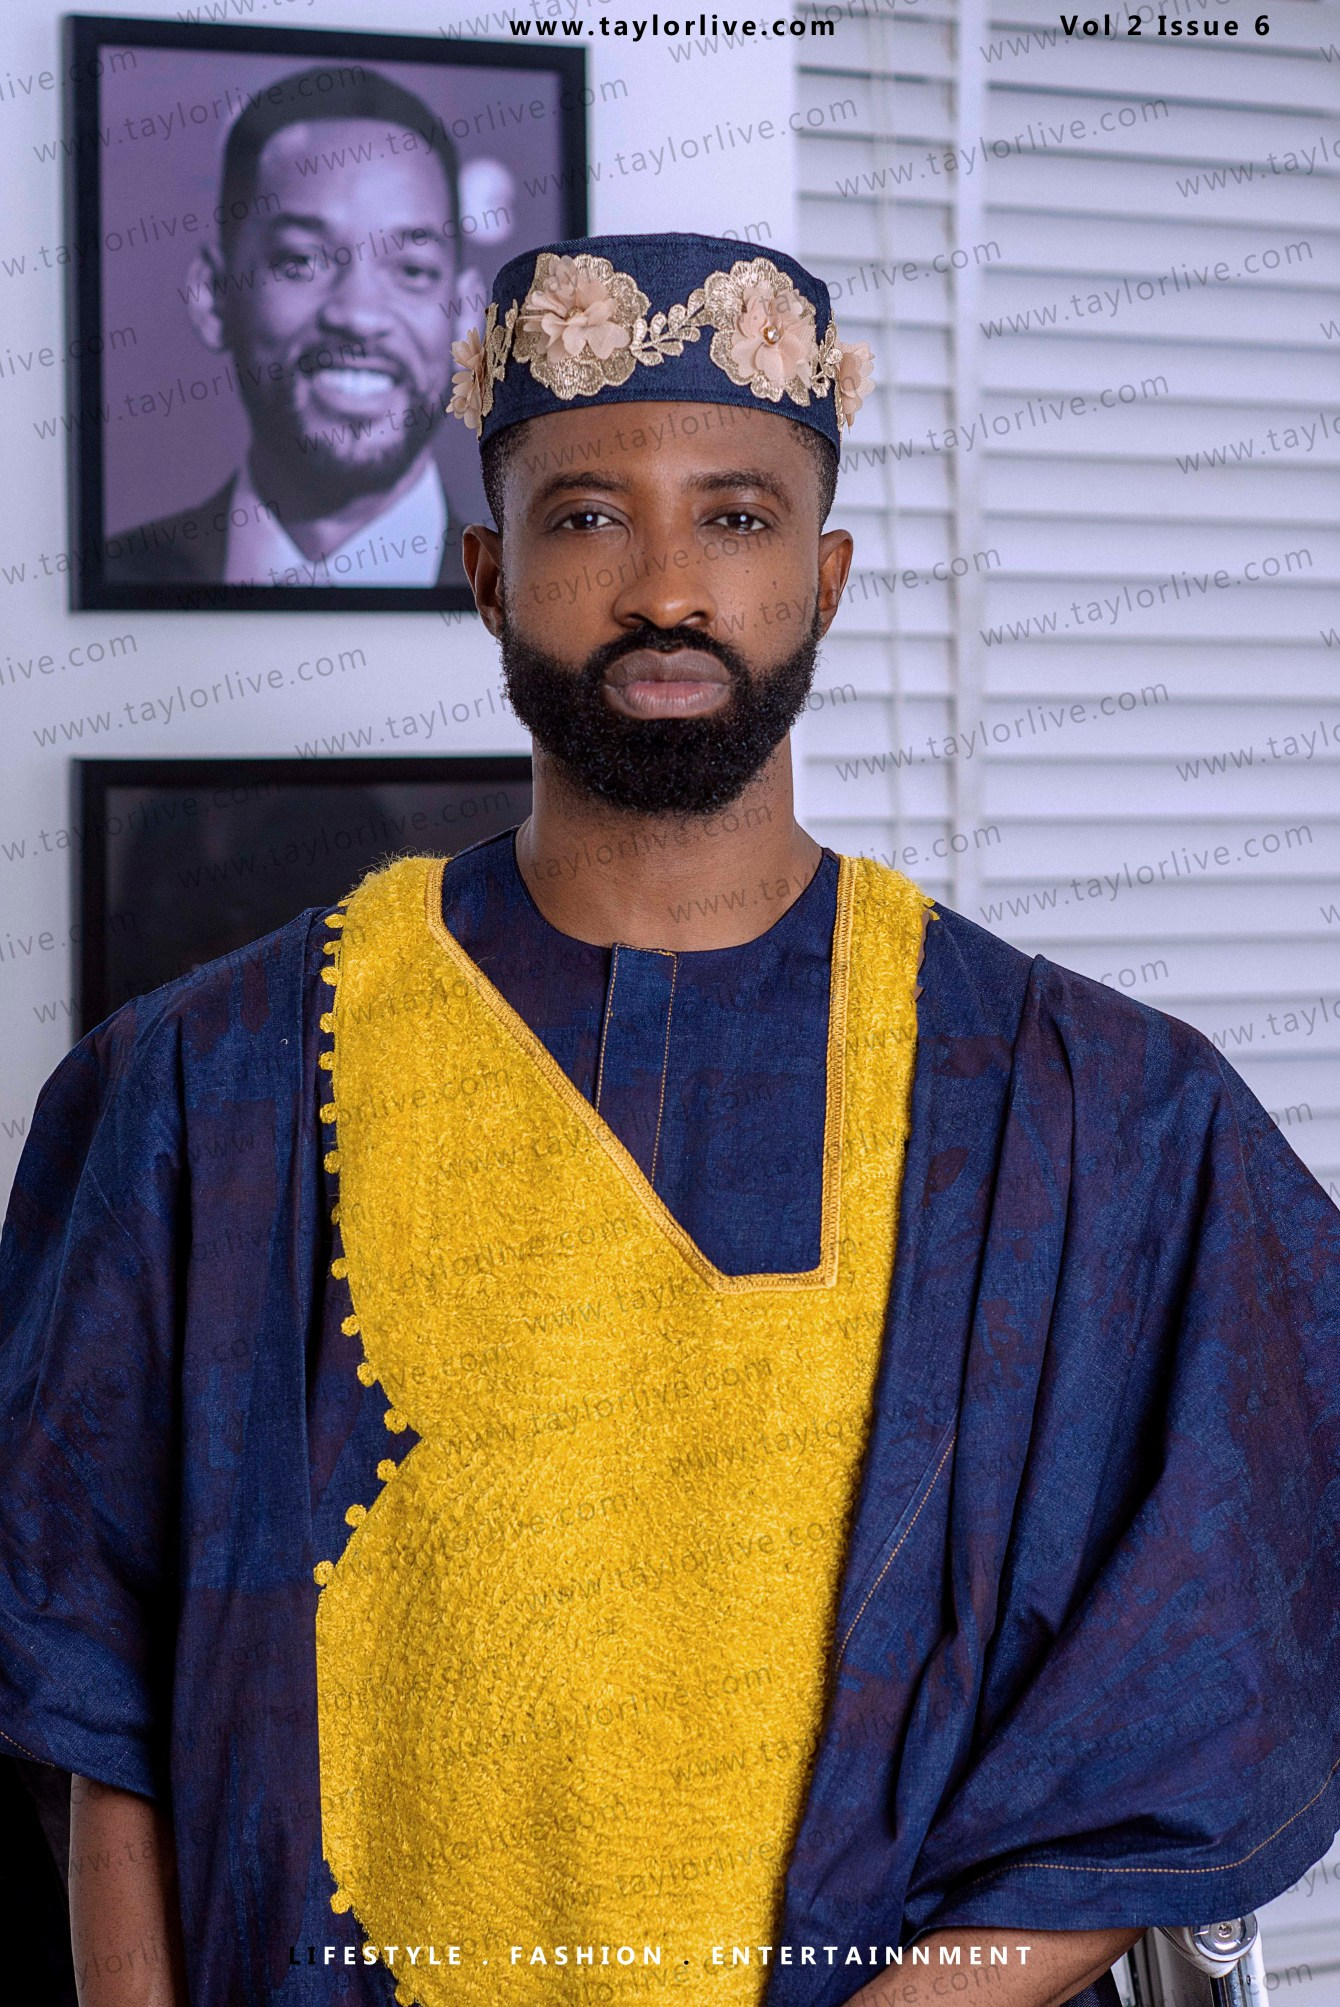 """MAN ON THE EDGE"" Ikechukwu Eric Ahiauzu popularly known as Ric Hassani Covers Taylor Live Magazine's Latest Issue (TL Magazine)."